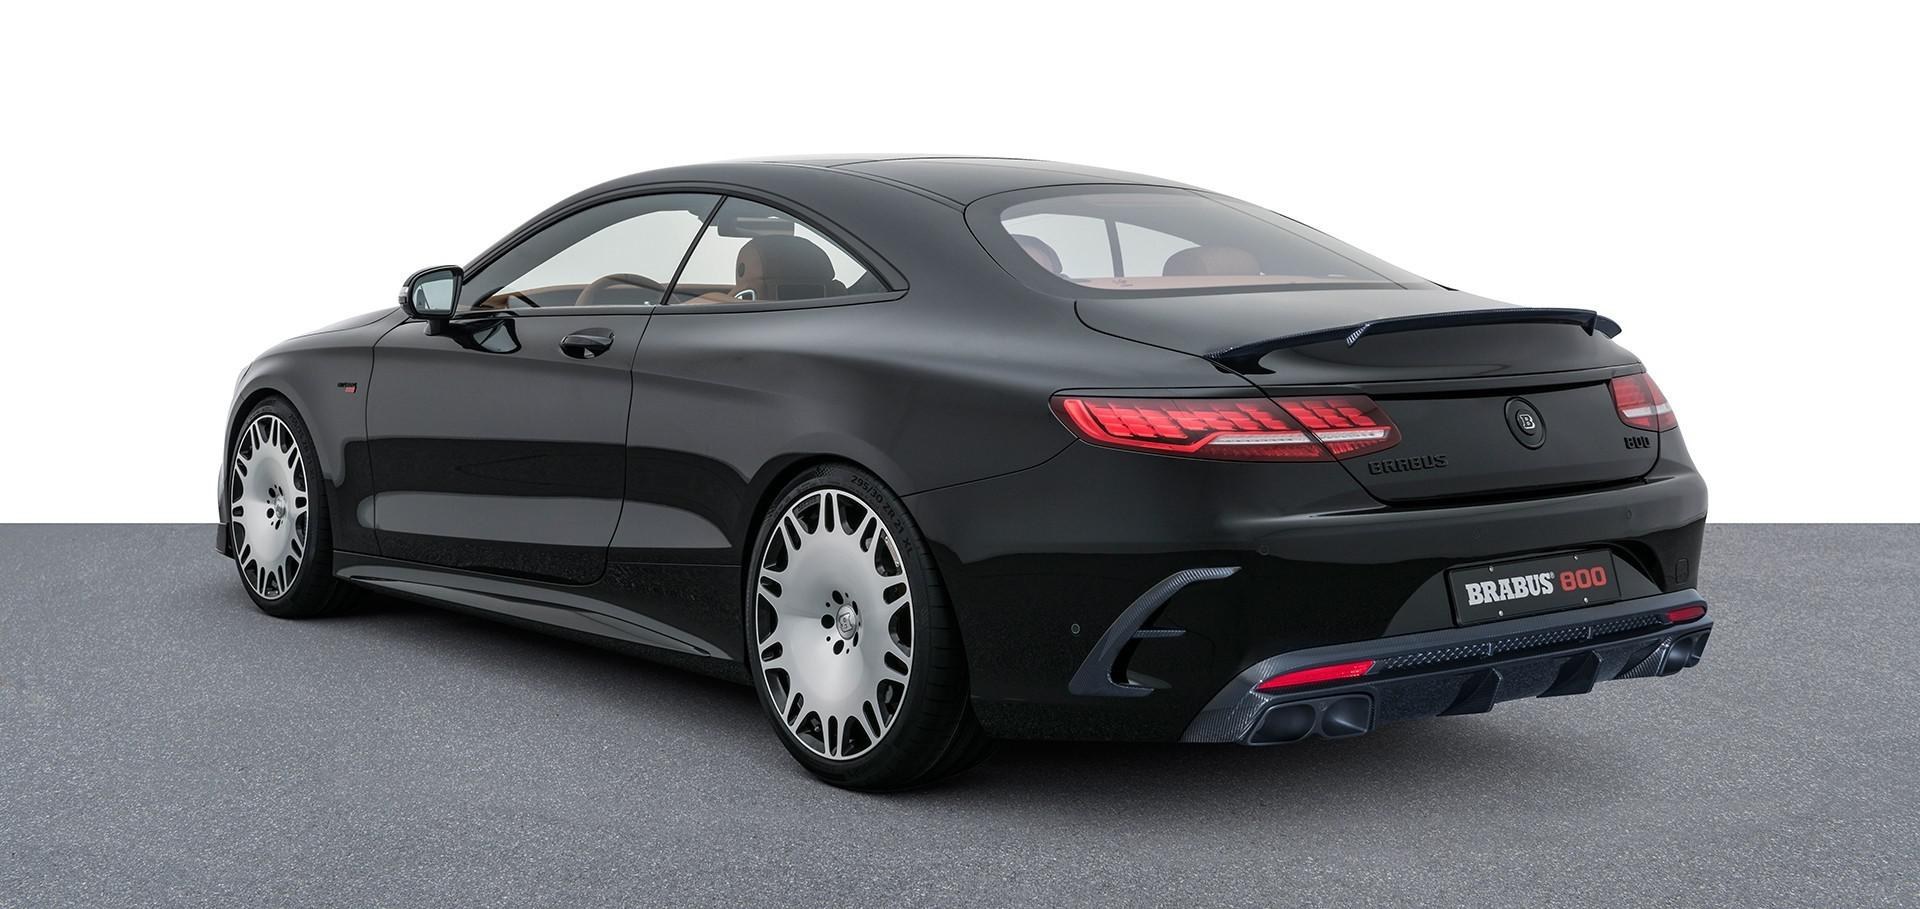 brabus-800-performance-mercedes-benz-s63-4matic-coupe-803-3.jpg